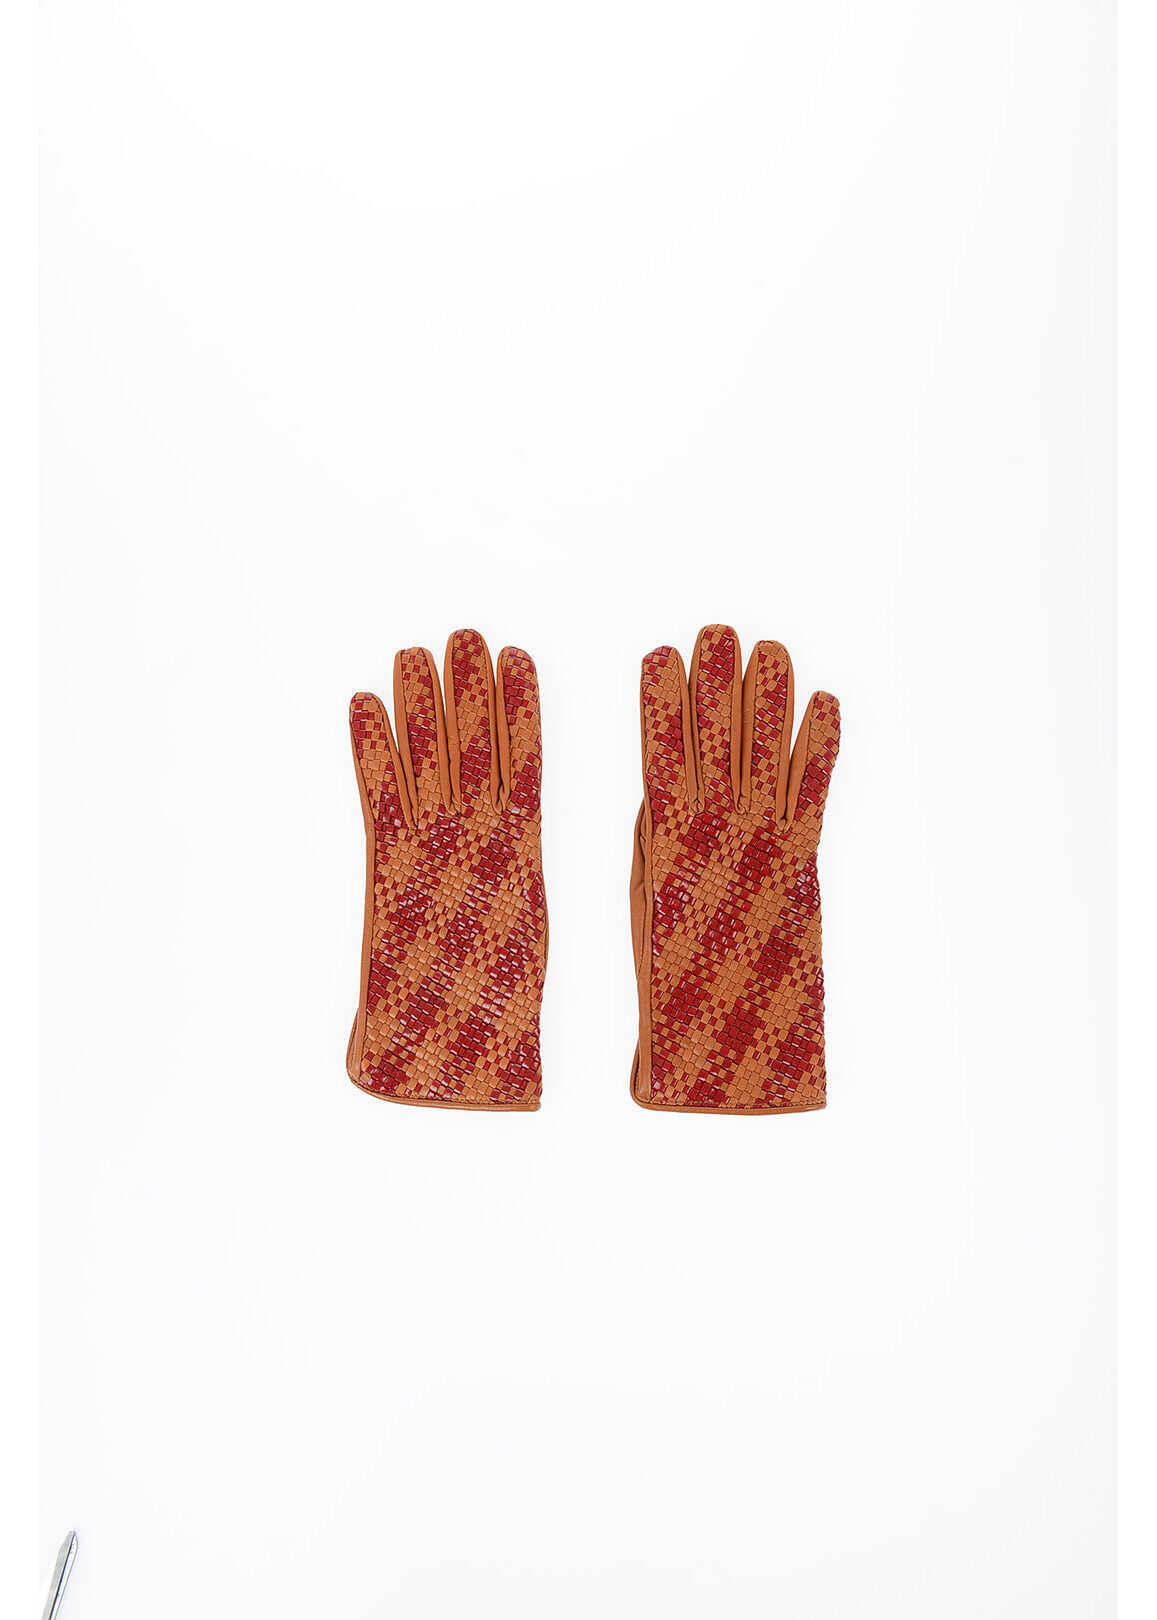 Maison Margiela MM0 Braided Leather Gloves BROWN